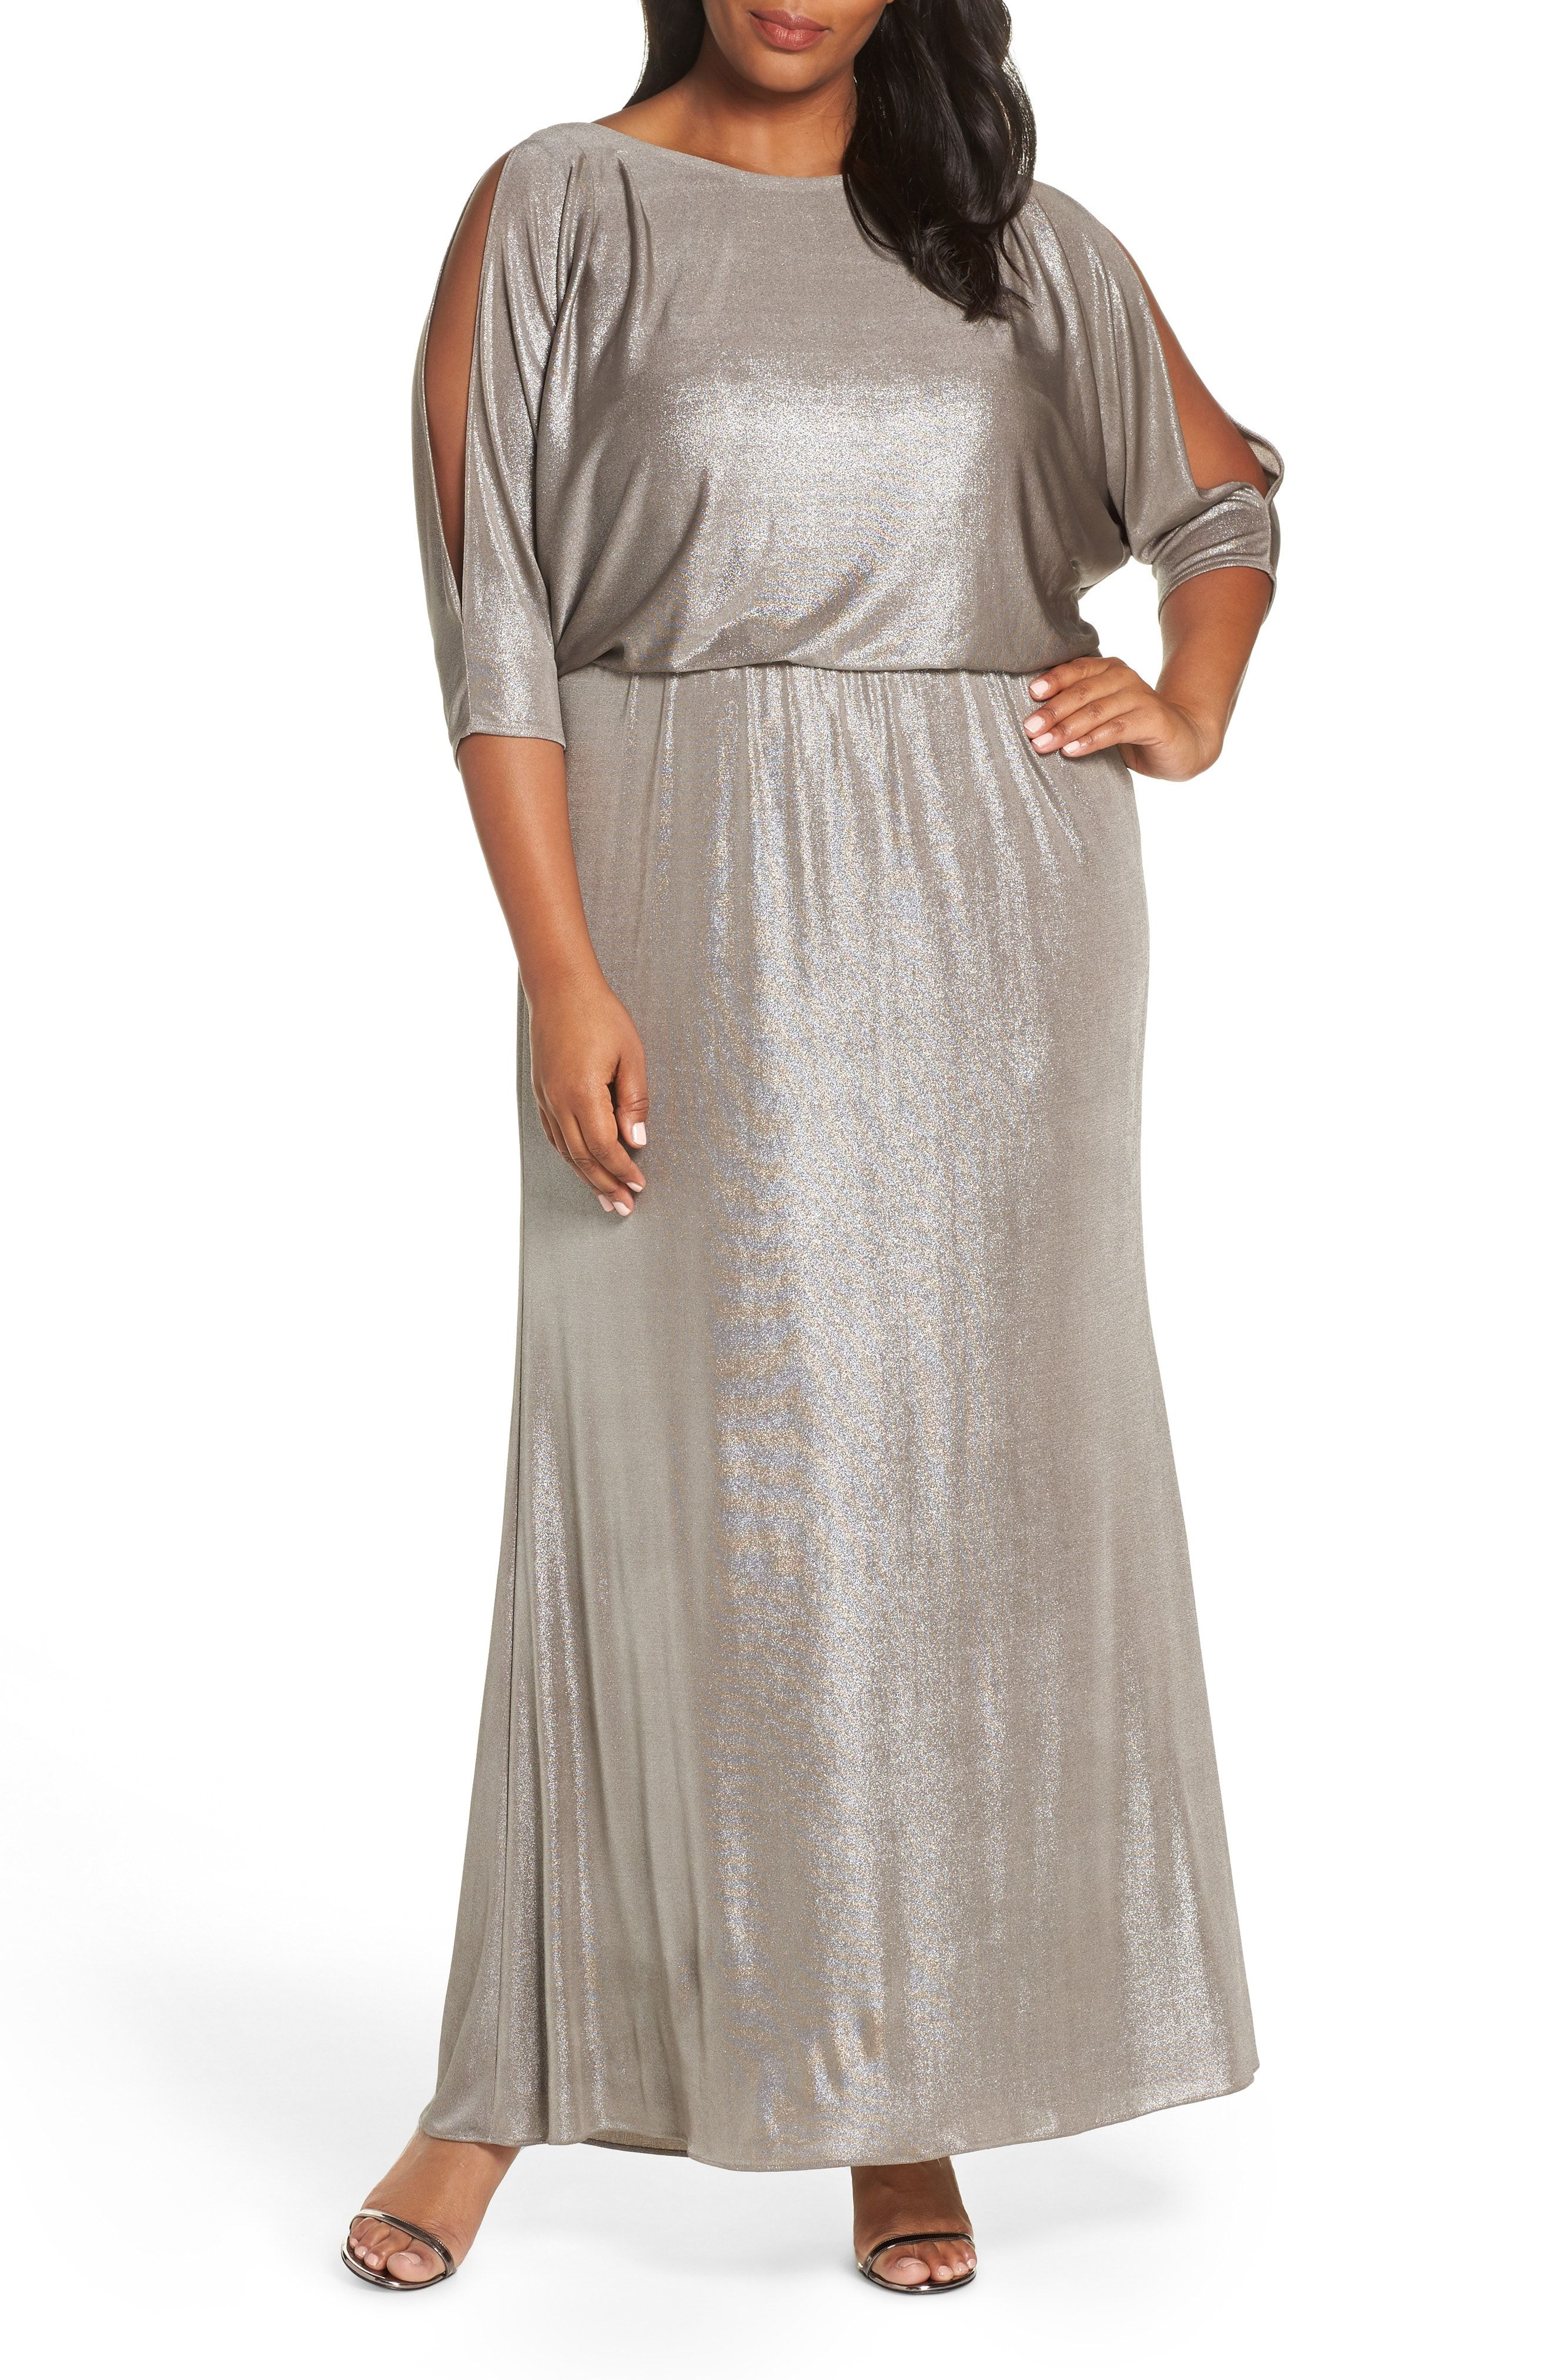 edf9aa12621d 23 Best Winter Wedding Guest Dresses - What to Wear to a Winter Wedding